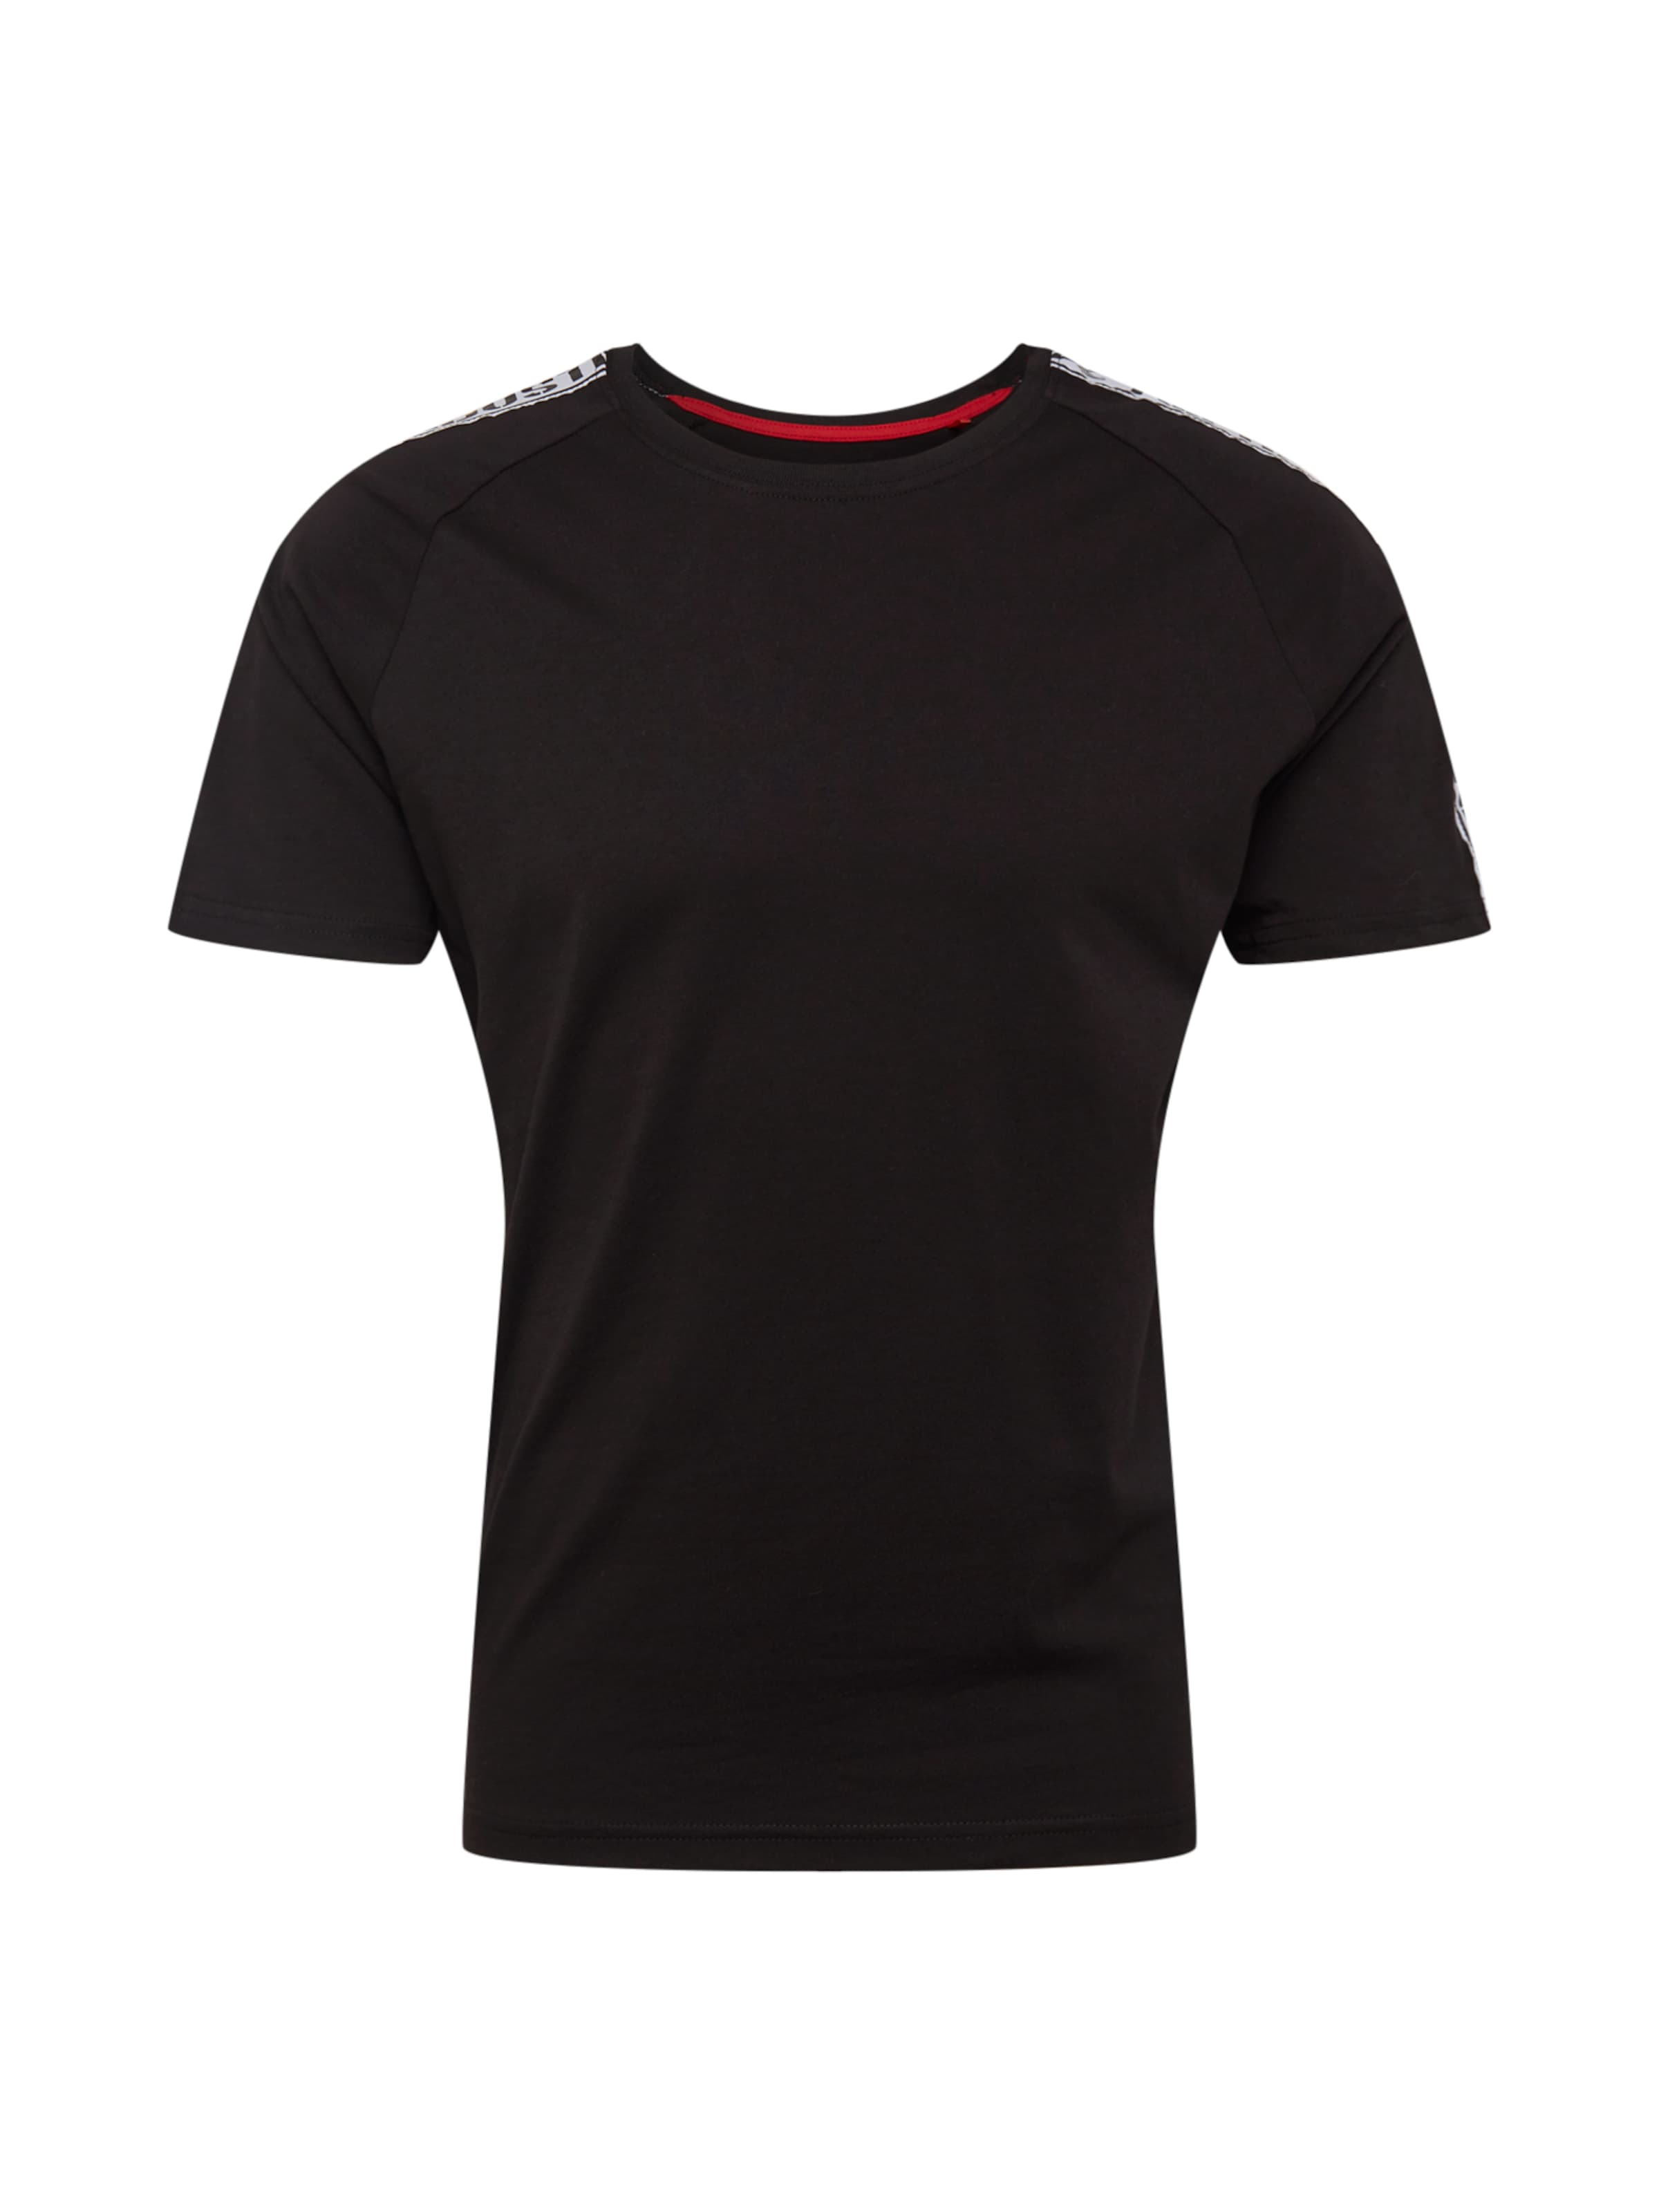 shirt Industries Alpha En Noir T XZPkui